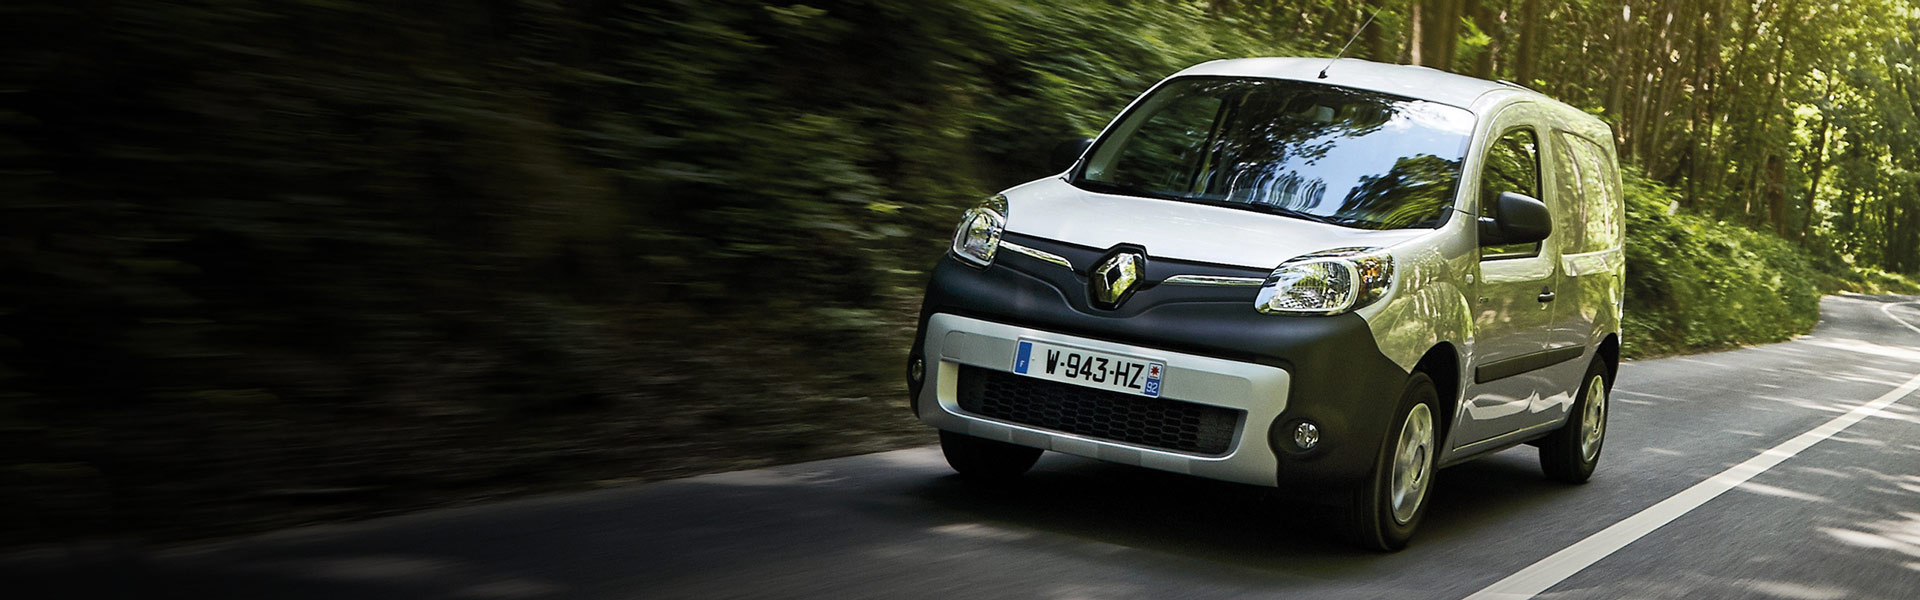 100 electric vehicles coming soon renault rh barrybourkerenault com au